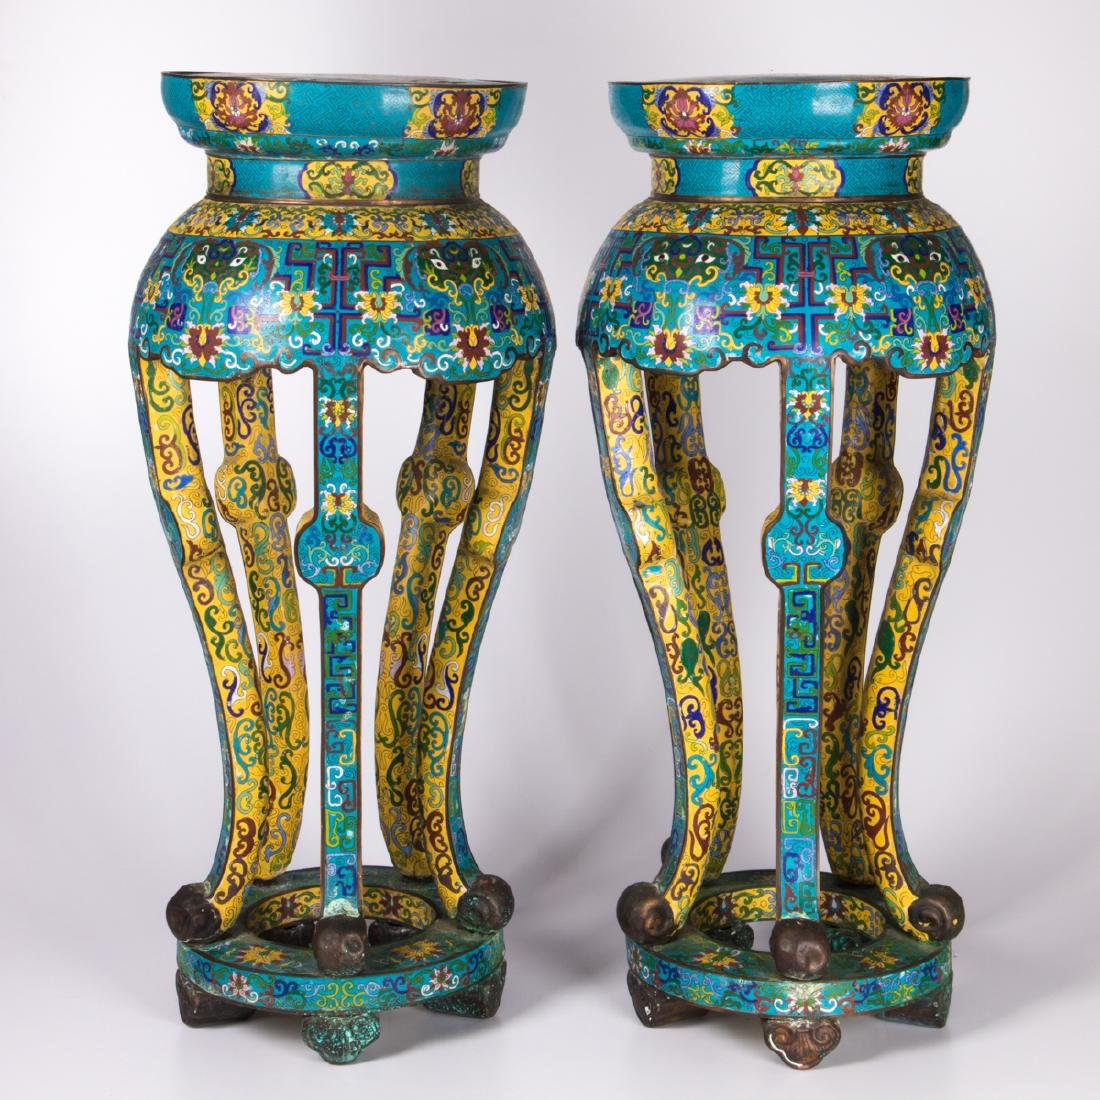 A Pair of Chinese Cloisonné Pedestals, Early 20th